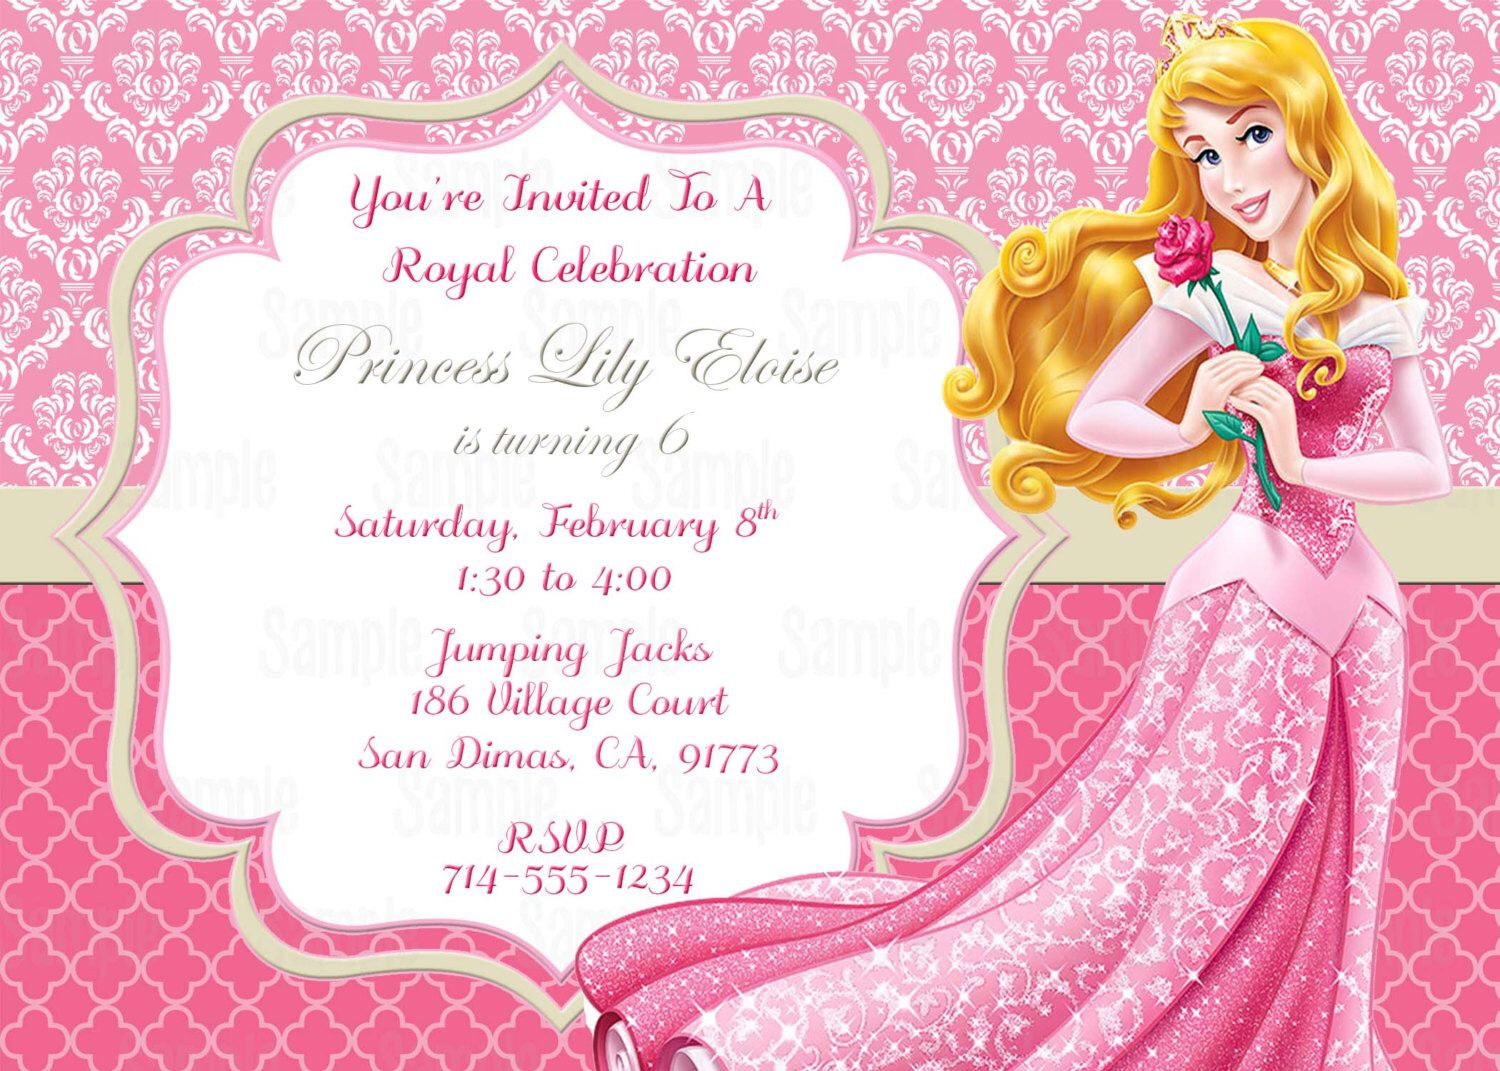 Printable Sleeping Beauty Princess Aurora Birthday Party Invitation By PartyInnovations09 On Etsy